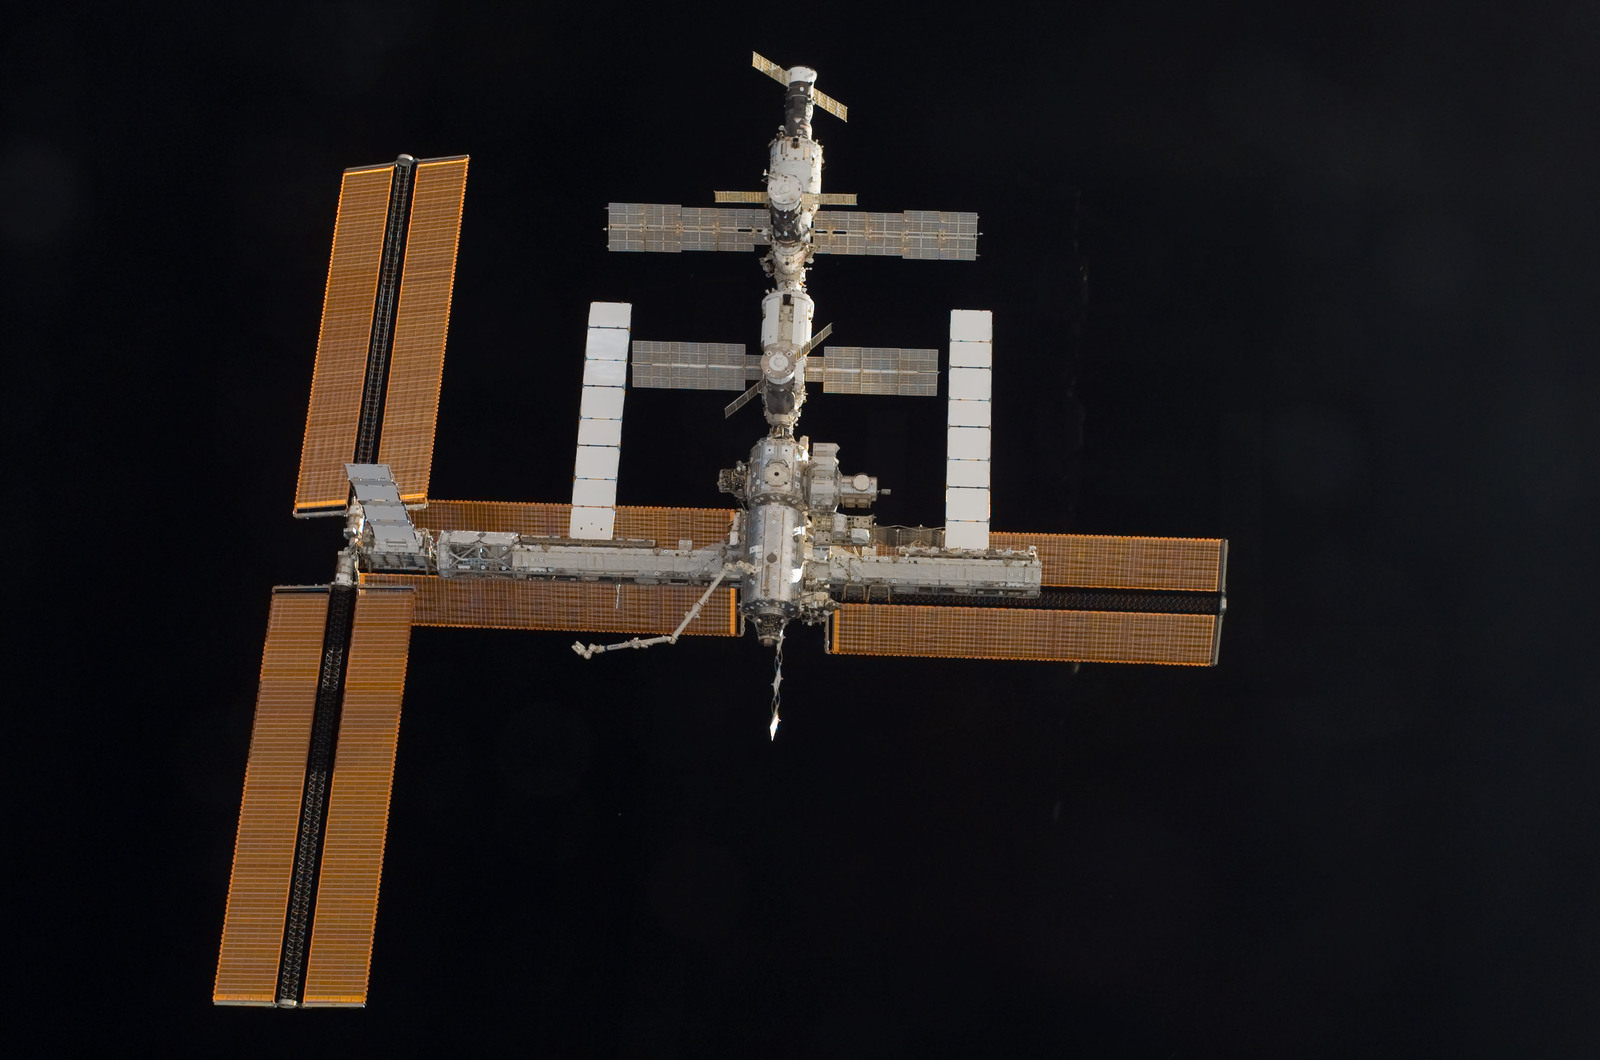 S115E06735 - STS-115 - Overall exterior view of the ISS during undocking and Flyaround Operations for STS-115 Space Shuttle Atlantis